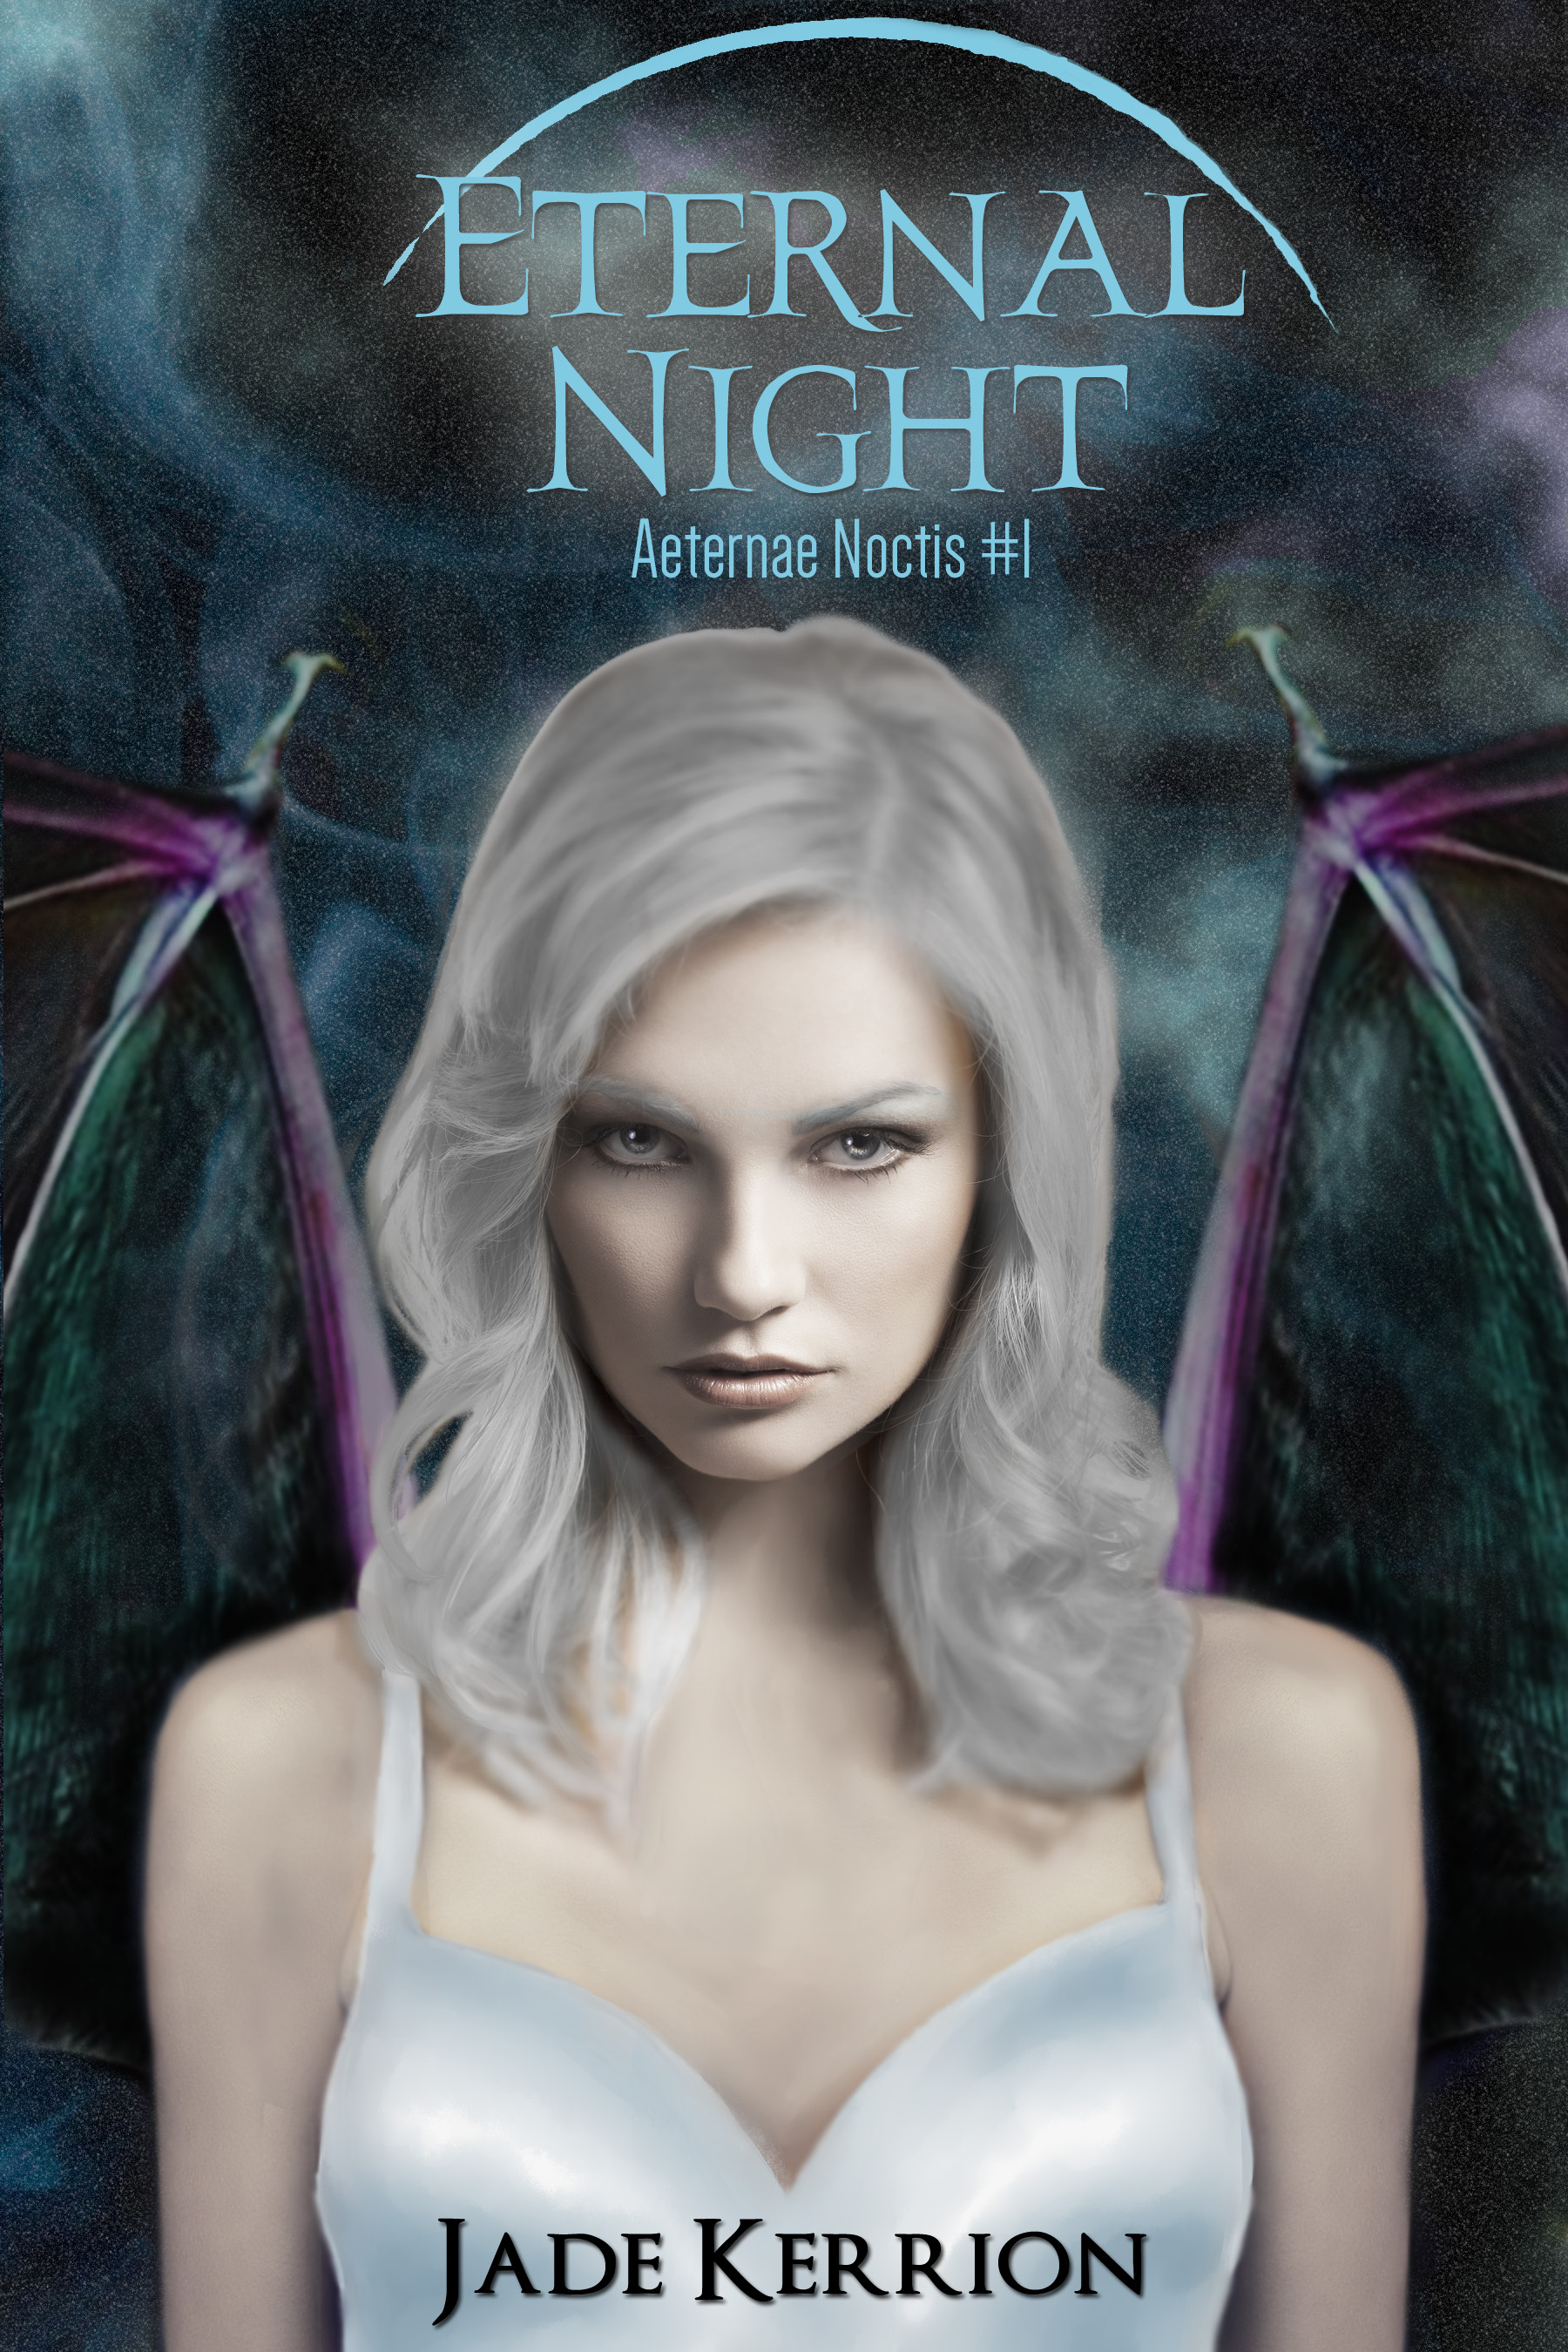 Eternal Night by Jade Kerrion